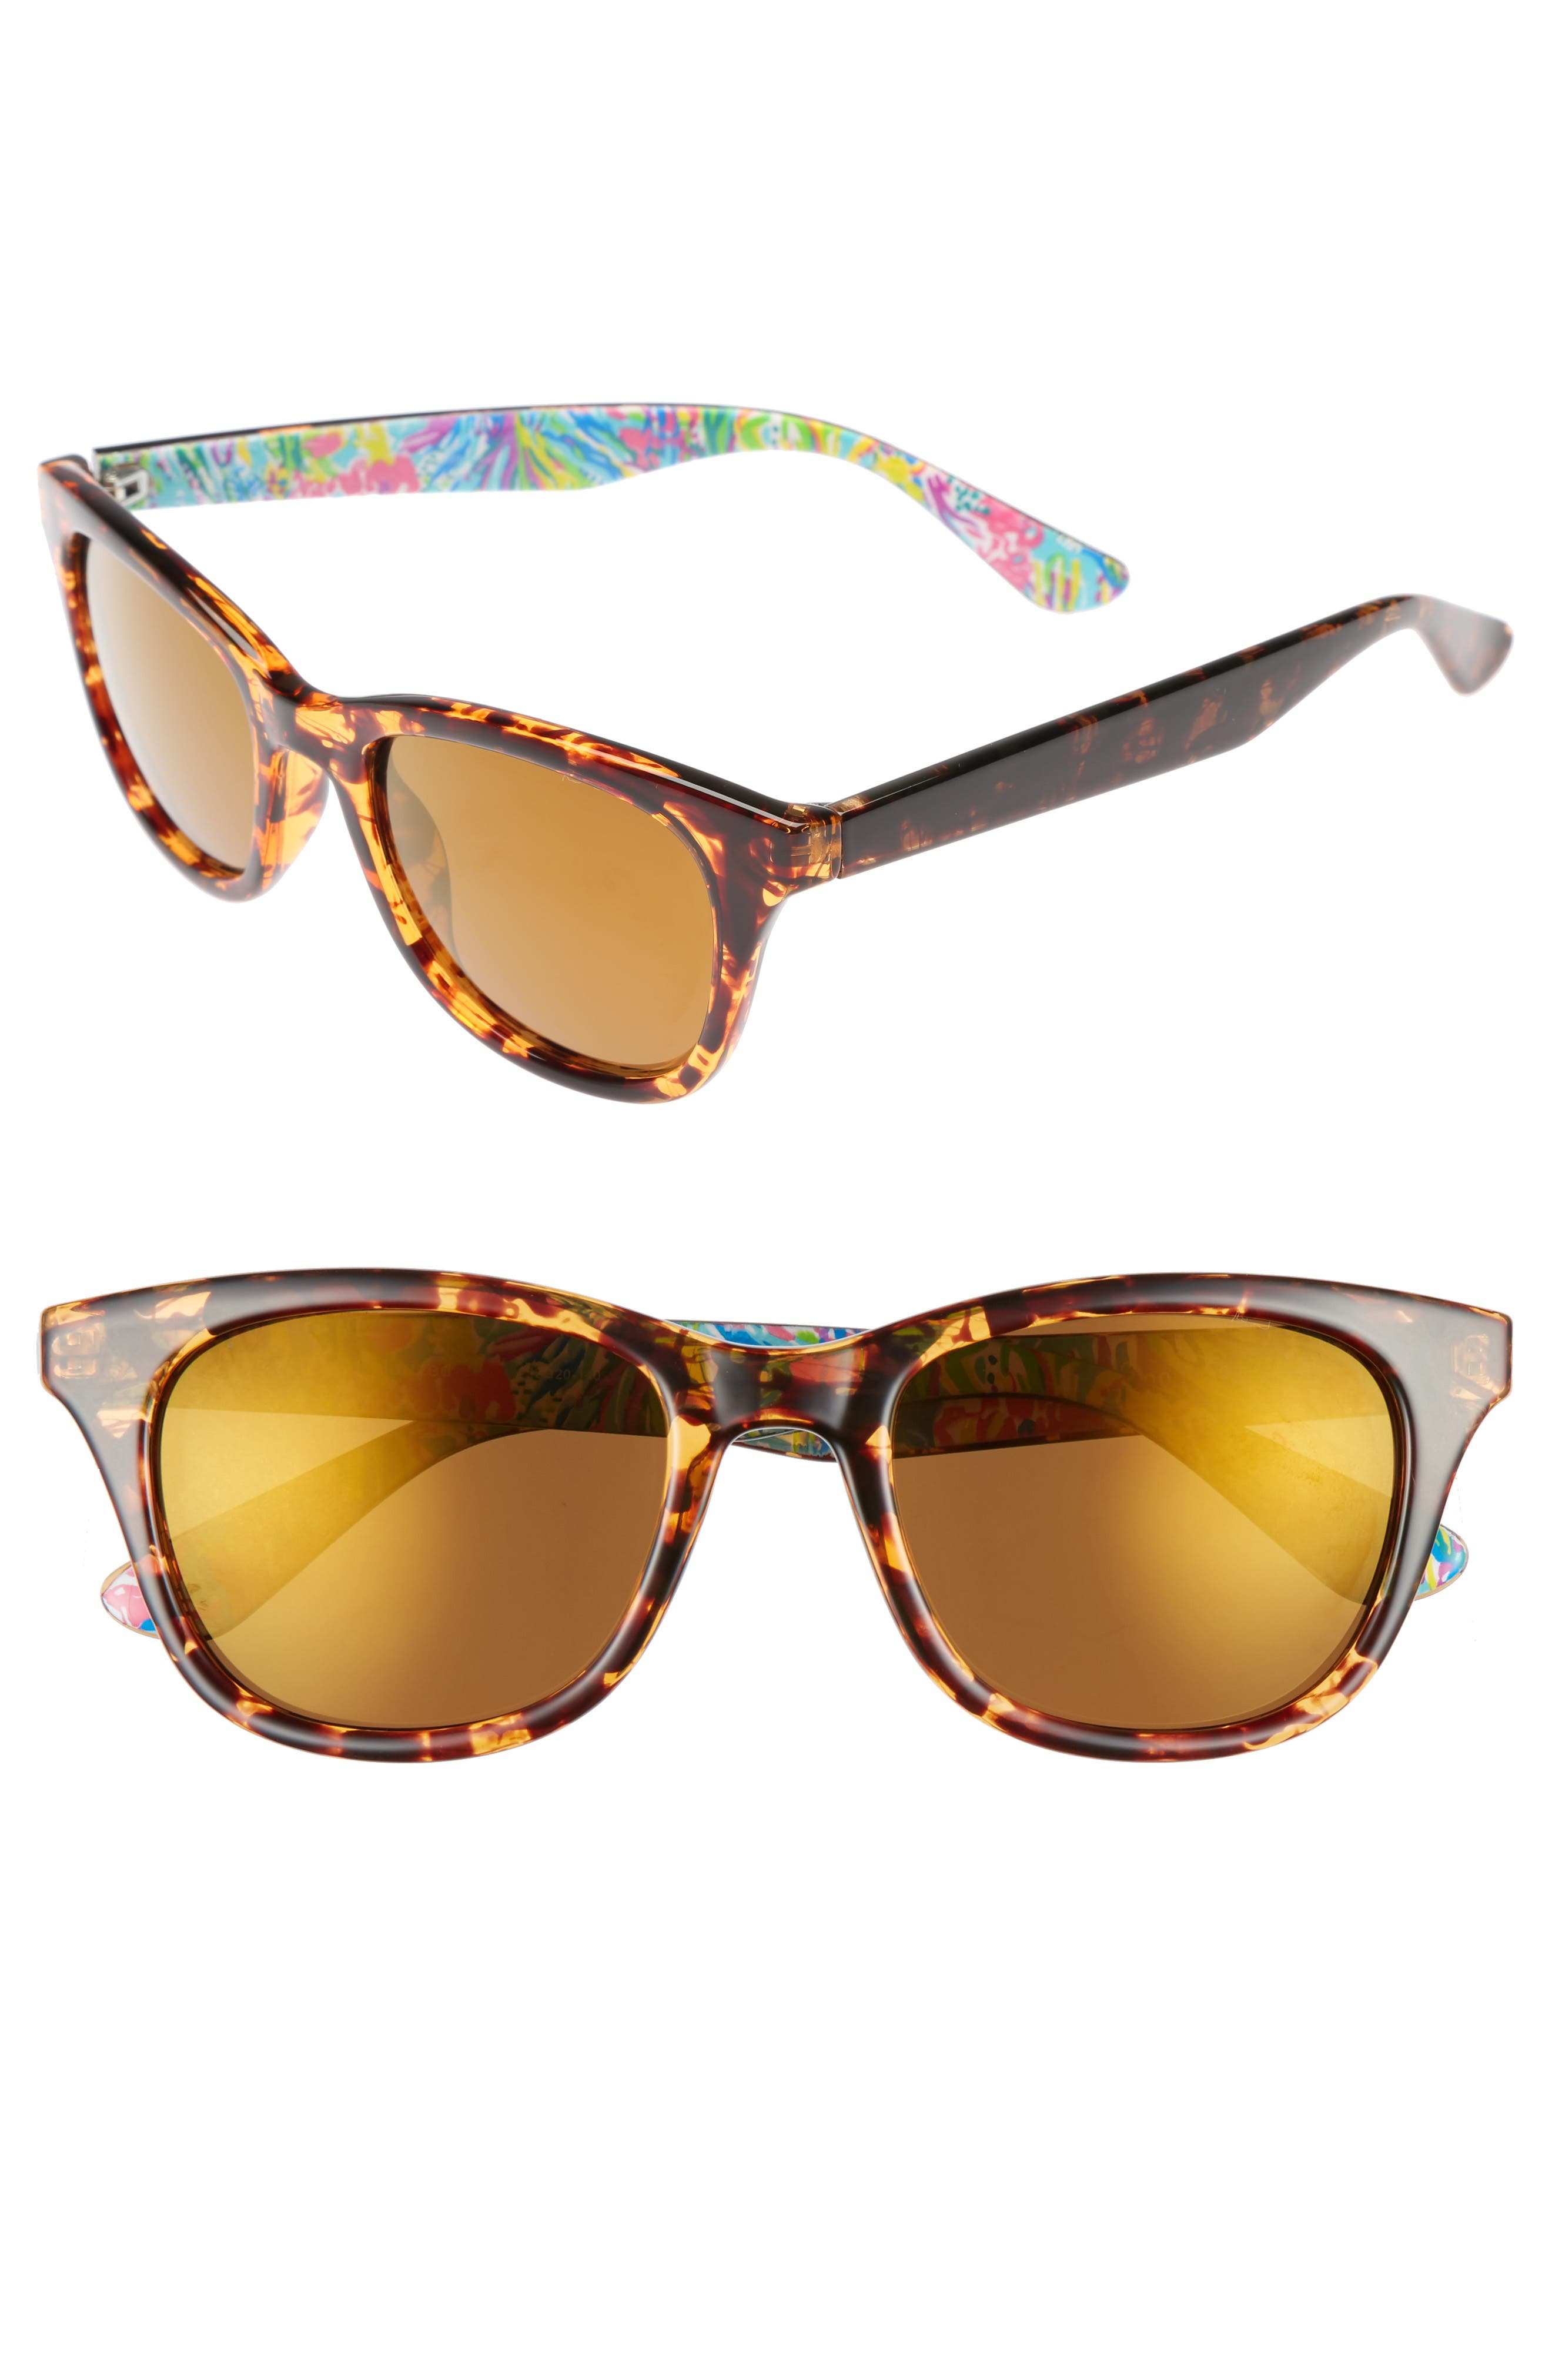 Alternate Image 1 Selected - Lilly Pulitzer® Maddie 52mm Polarized Mirrored Sunglasses